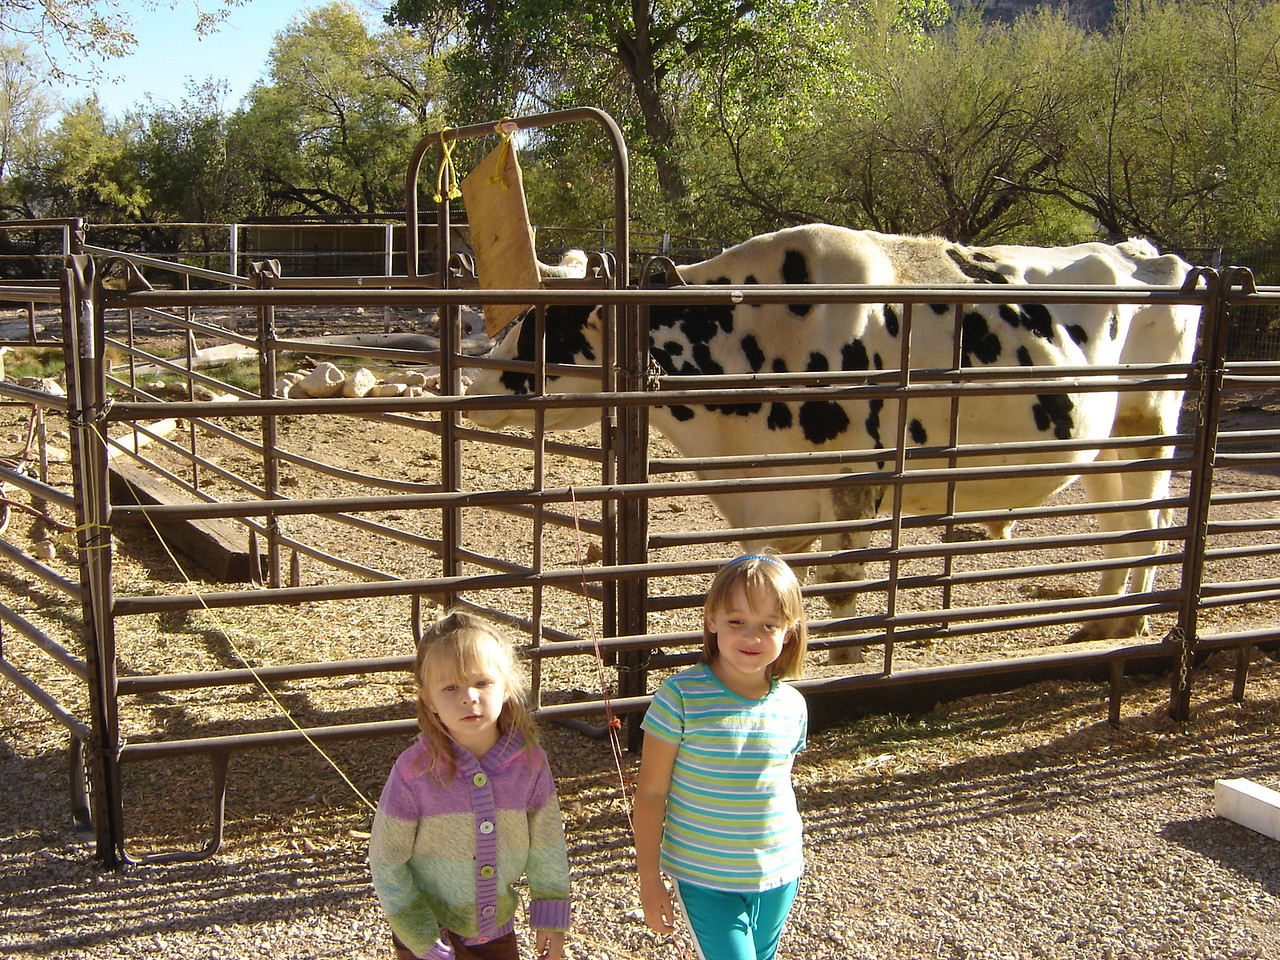 They have a Texas Longhorn. It's amazing how big this animal is.